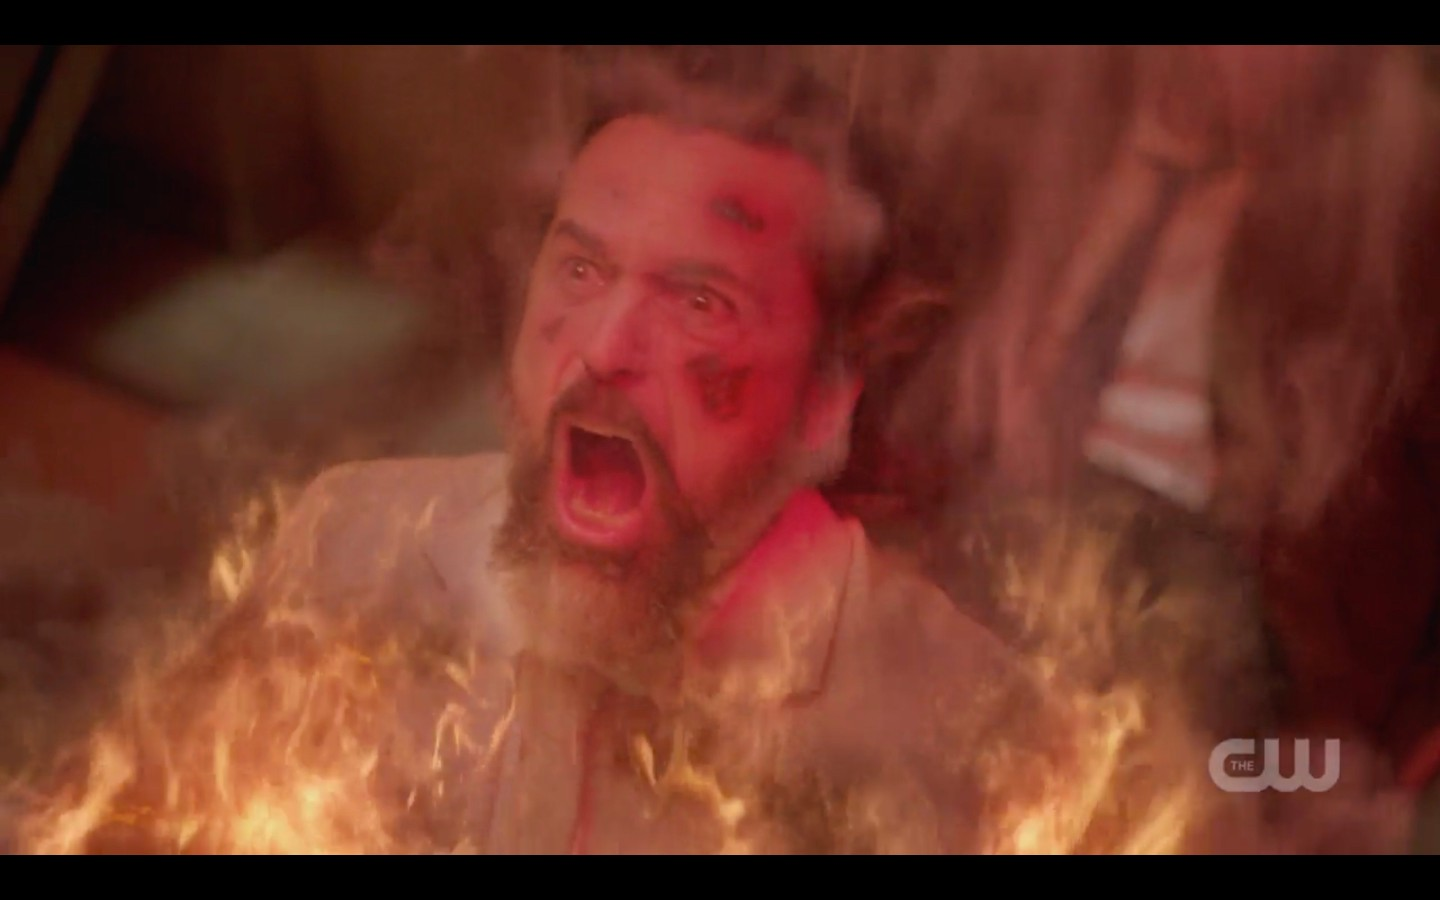 supernatural asmodeus goes up in flames from gabriel